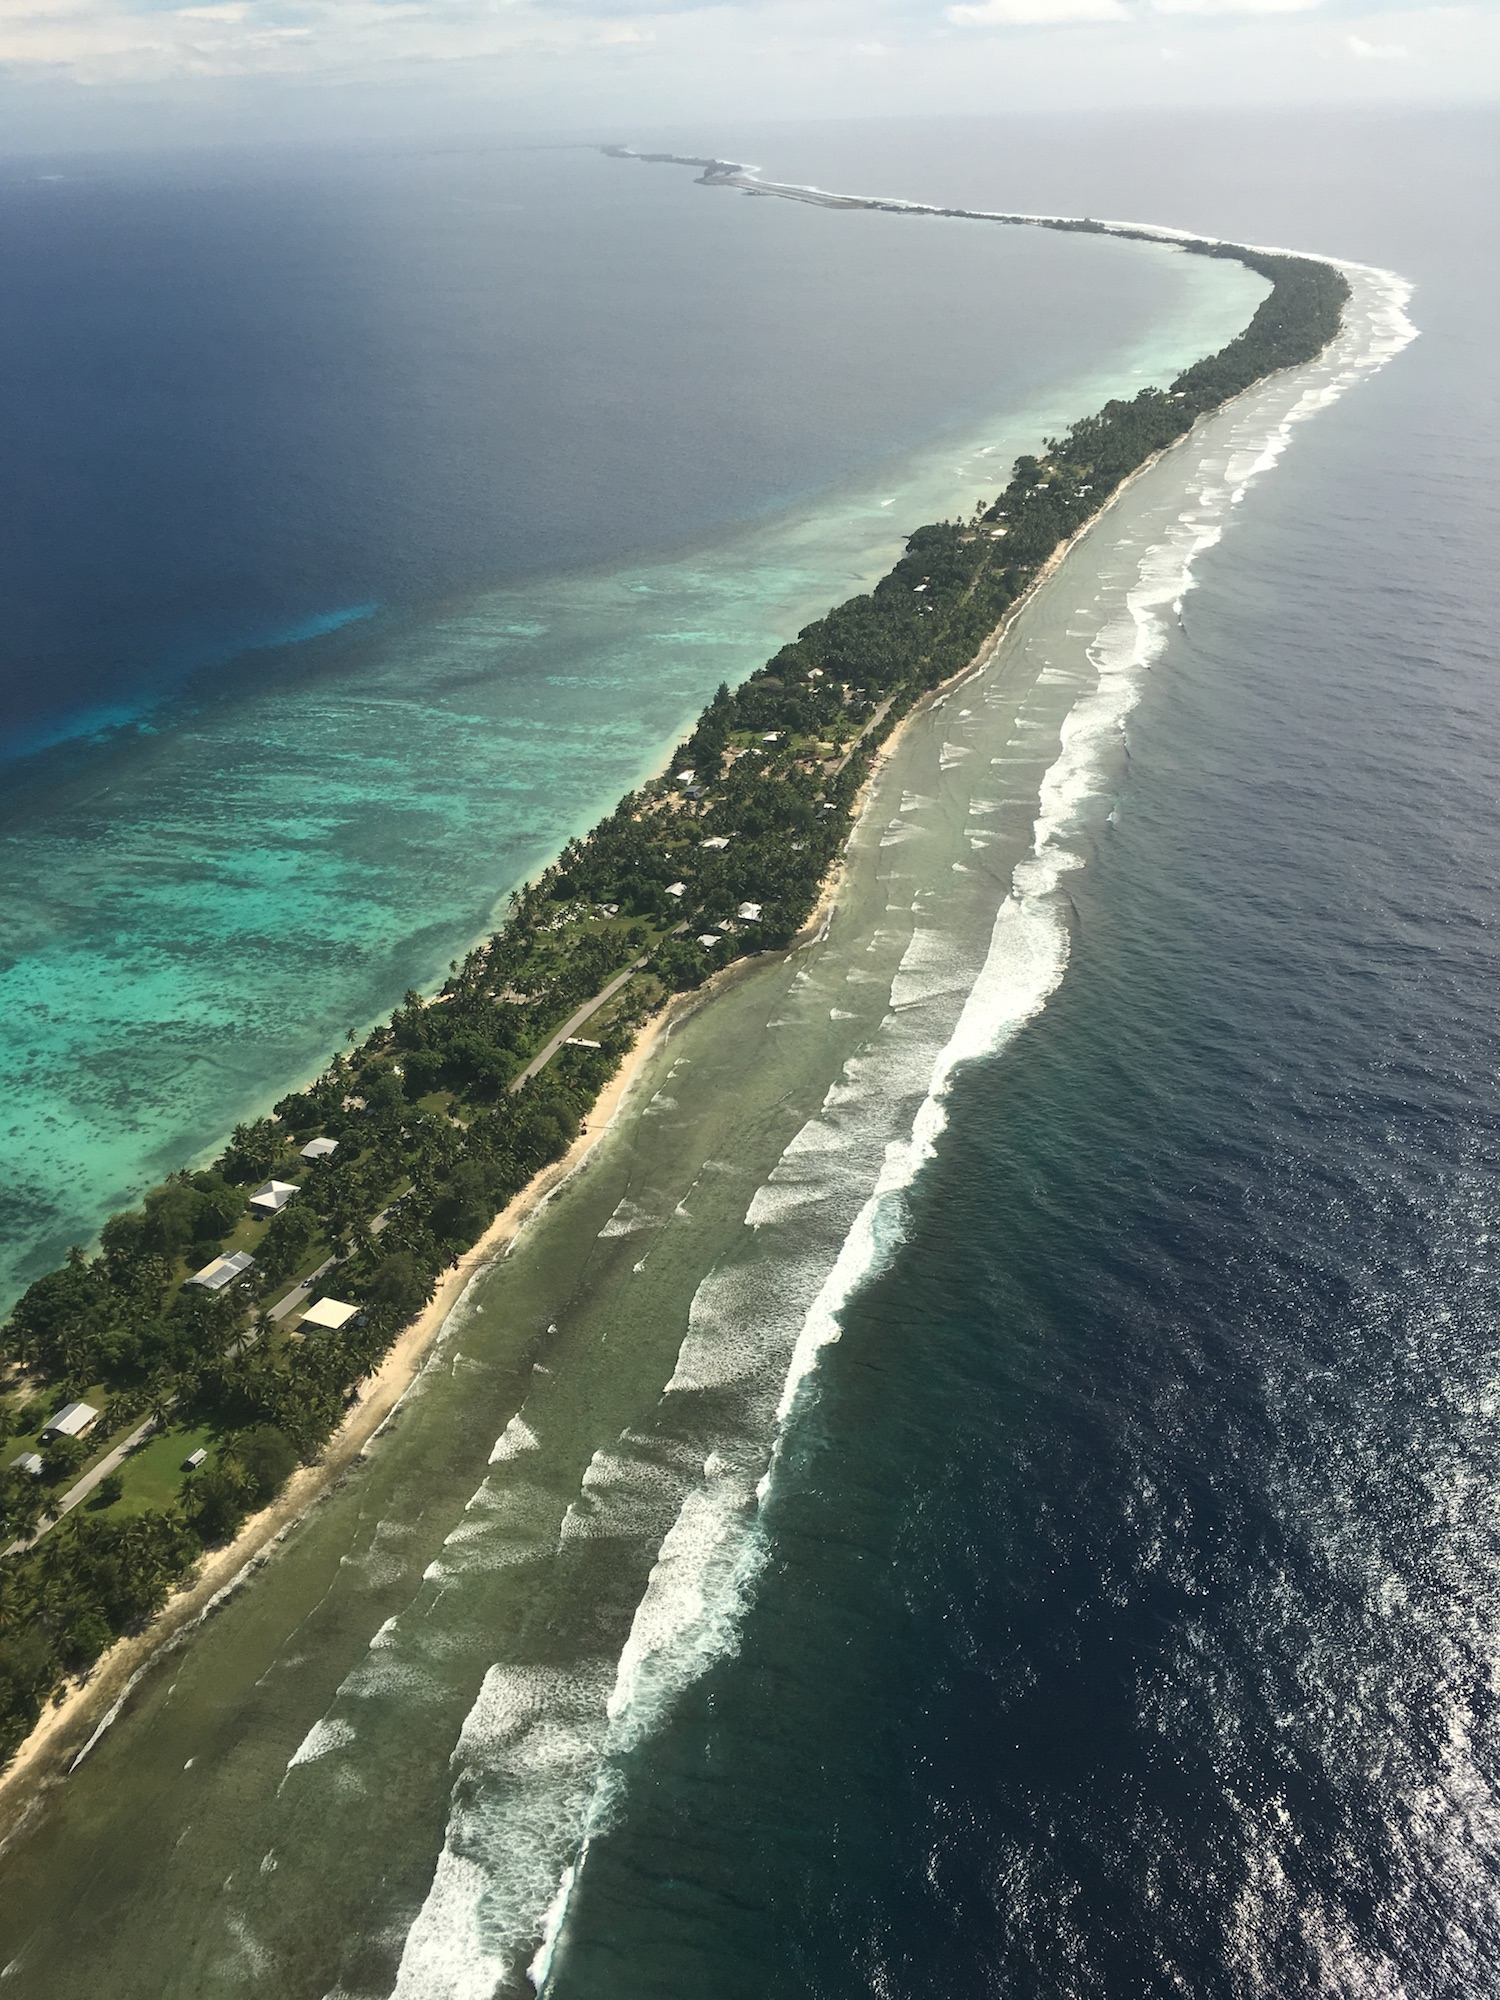 Majuro Atoll from the air